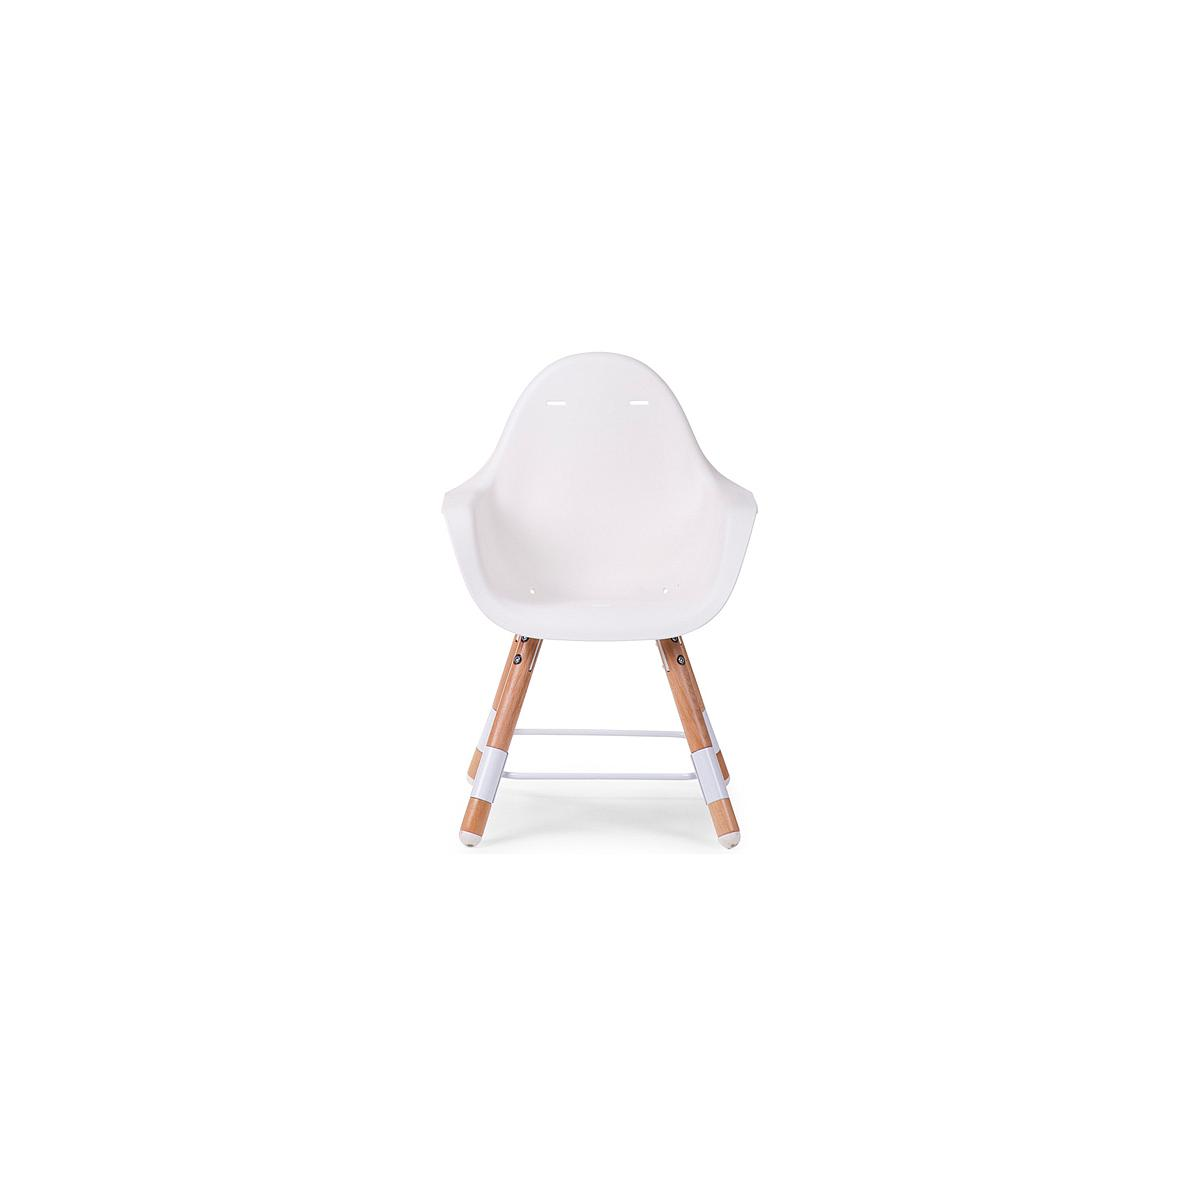 Chaise haute EVOLU 2 Childhome blanc-naturel